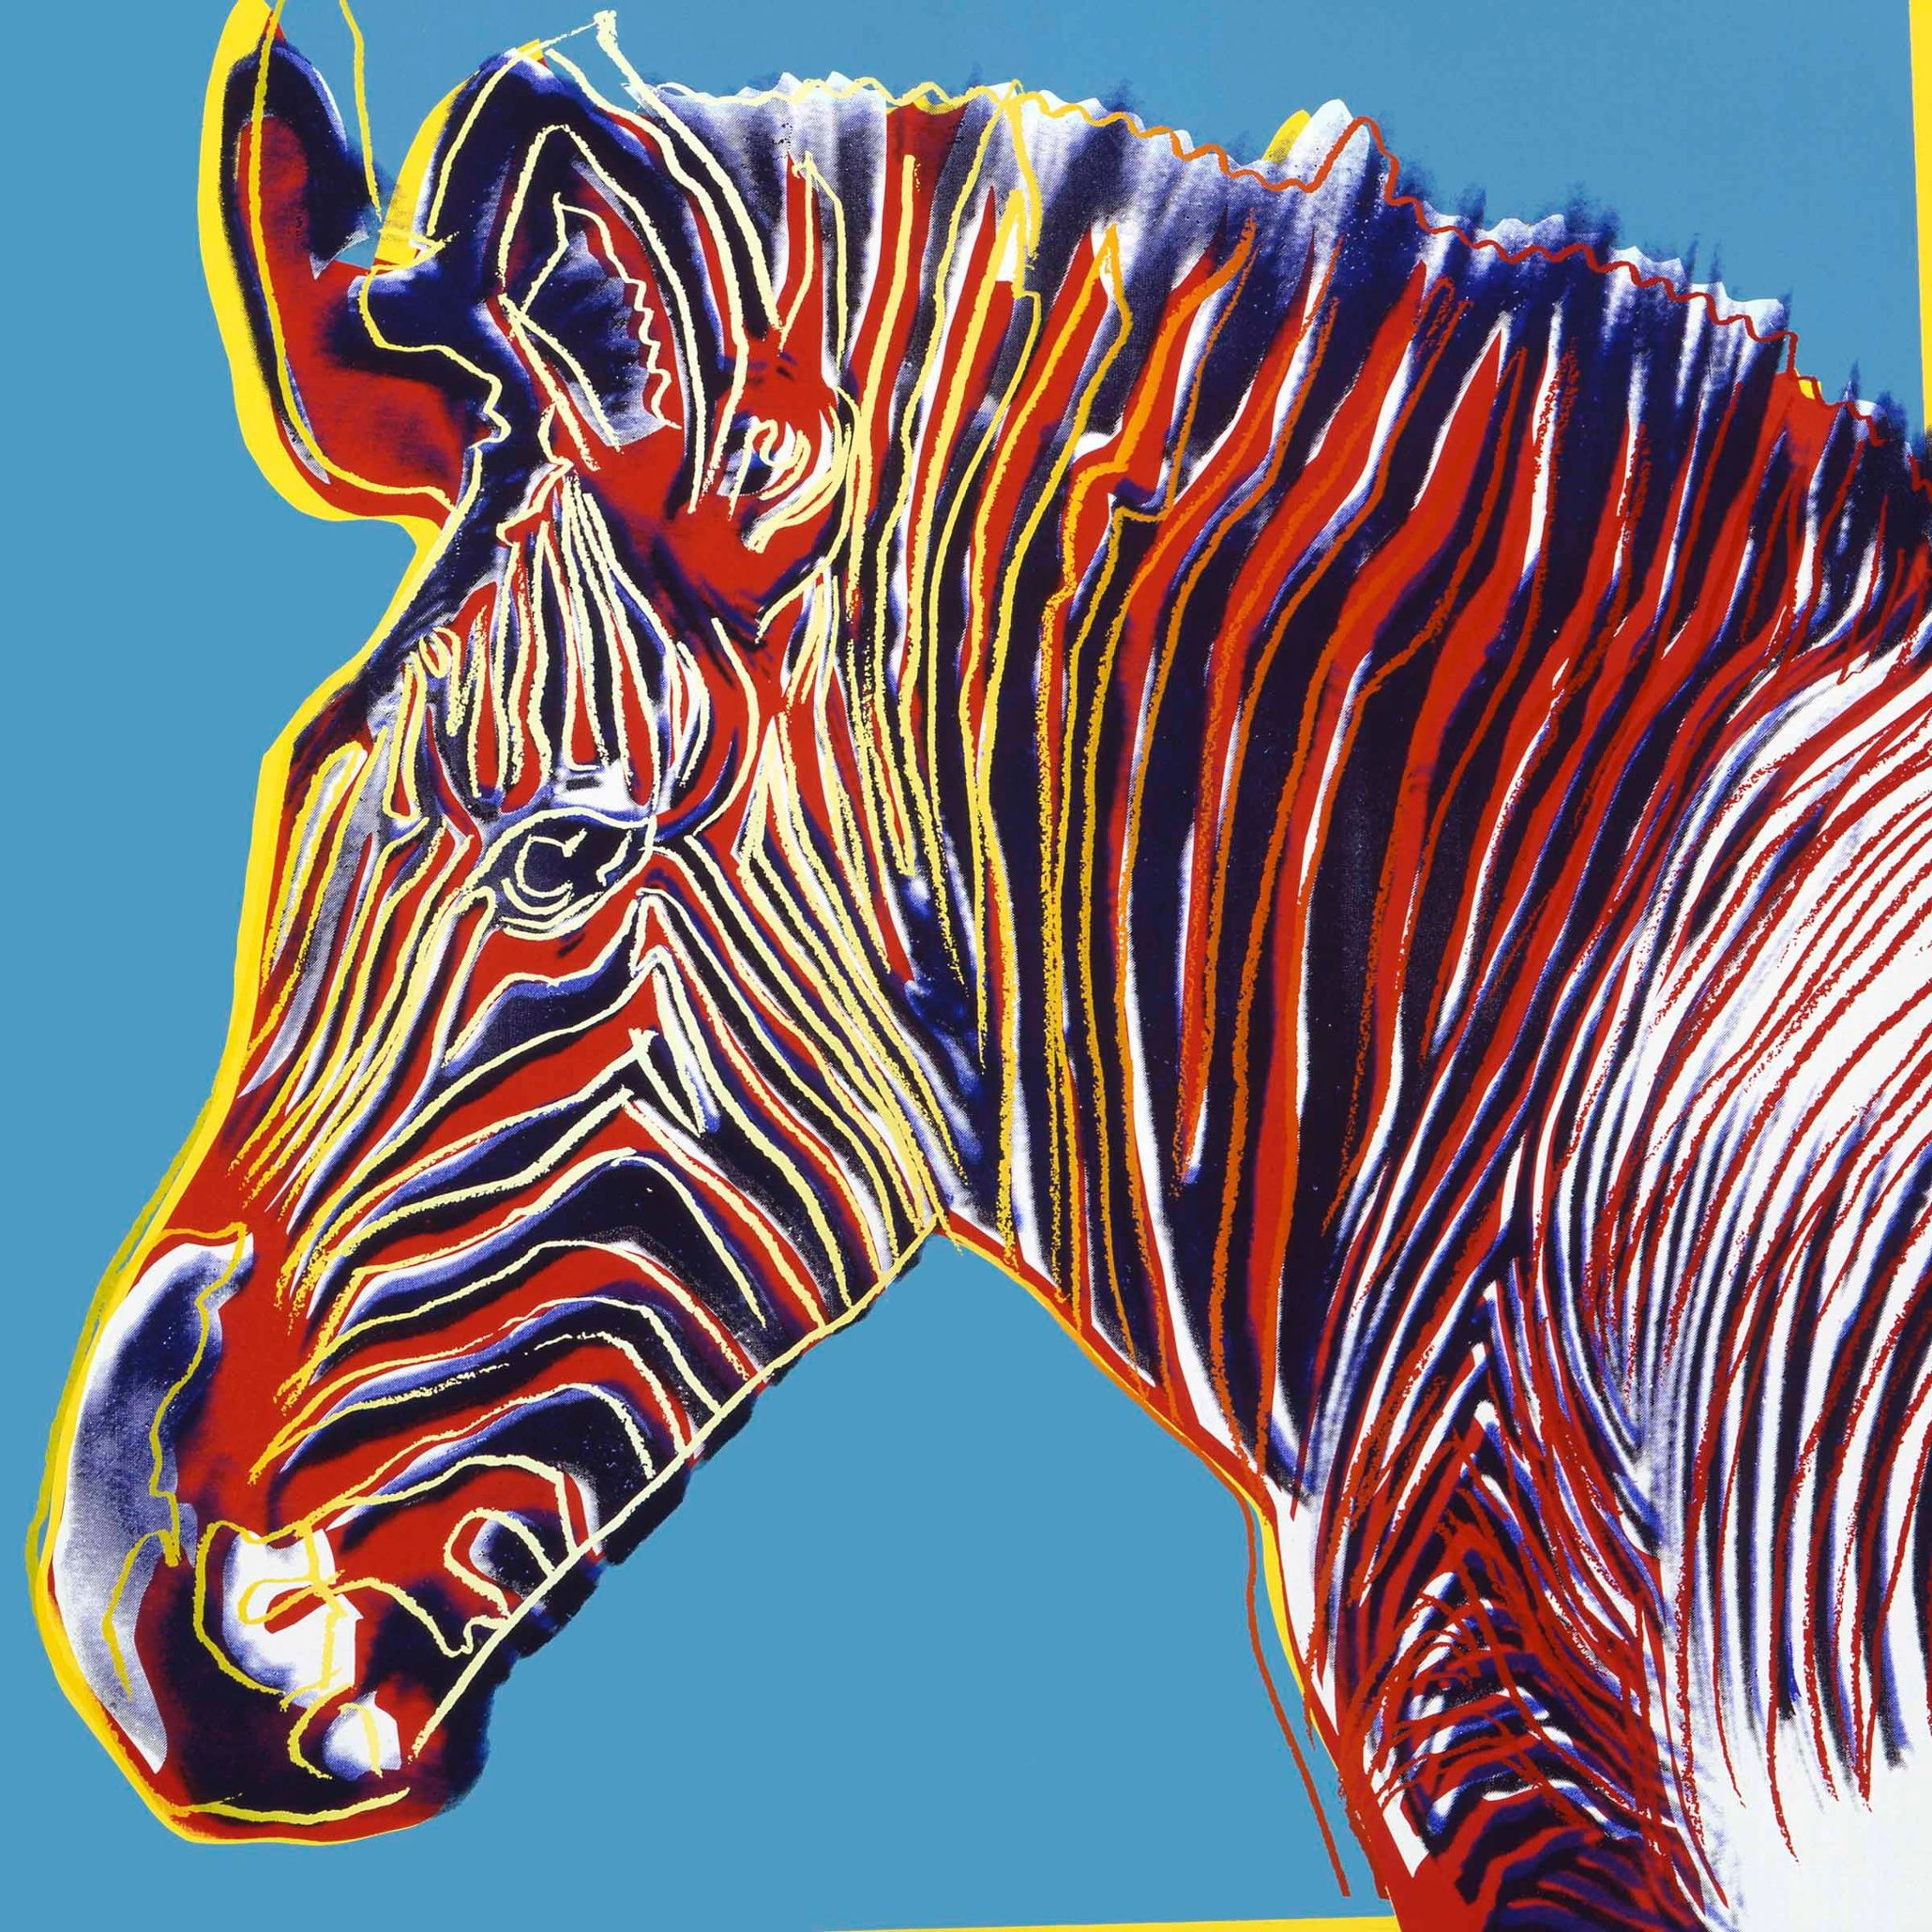 Andy Warhol's psychedelic endangered animals in pictures